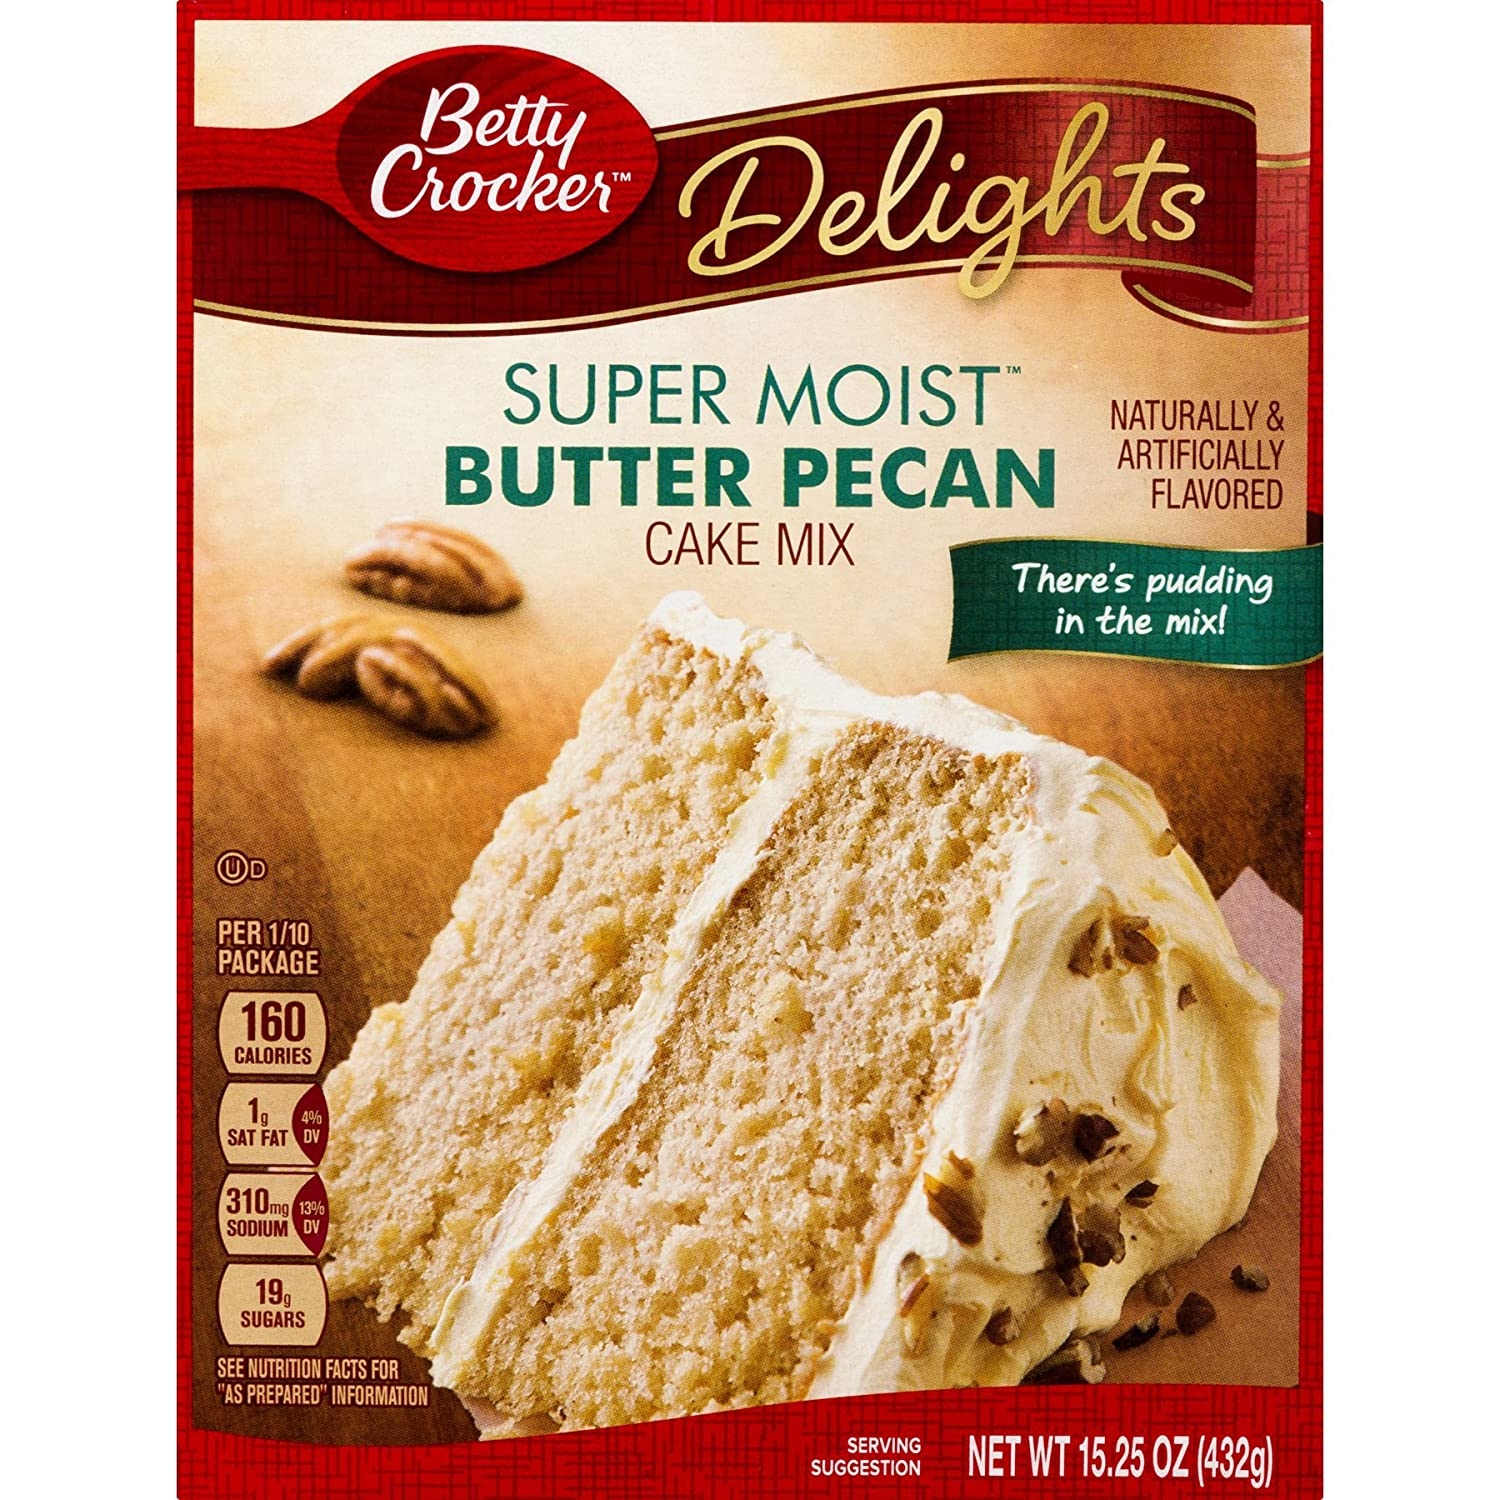 Amazon.com : Betty Crocker Super Moist Butter Pecan Cake Mix, Betty Crocker Whipped Buttercream Frosting, and 1.5oz Bag of Chopped Pecans to Top the Cake ...